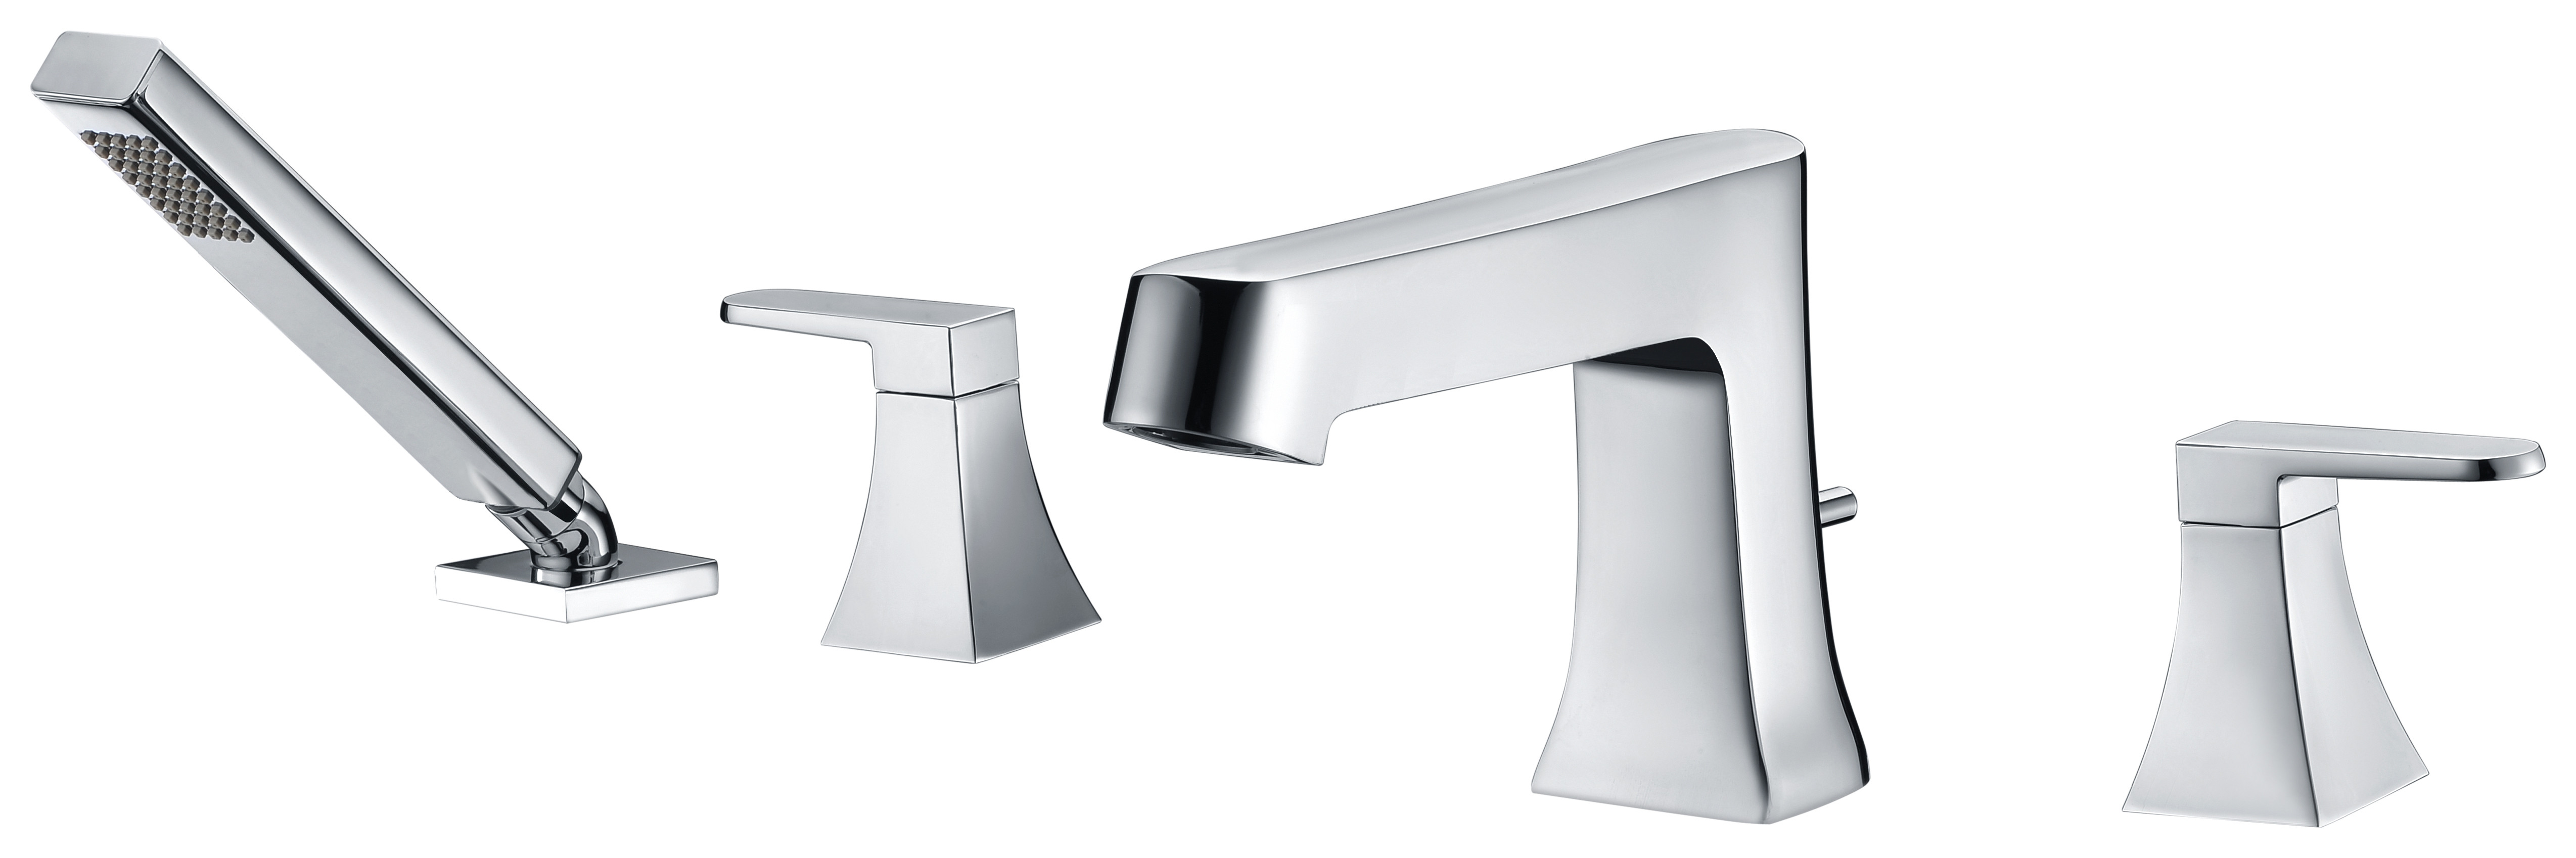 ANZZI FR-AZ174 Cove Tub Faucet with Handheld Sprayer In Polished Chrome